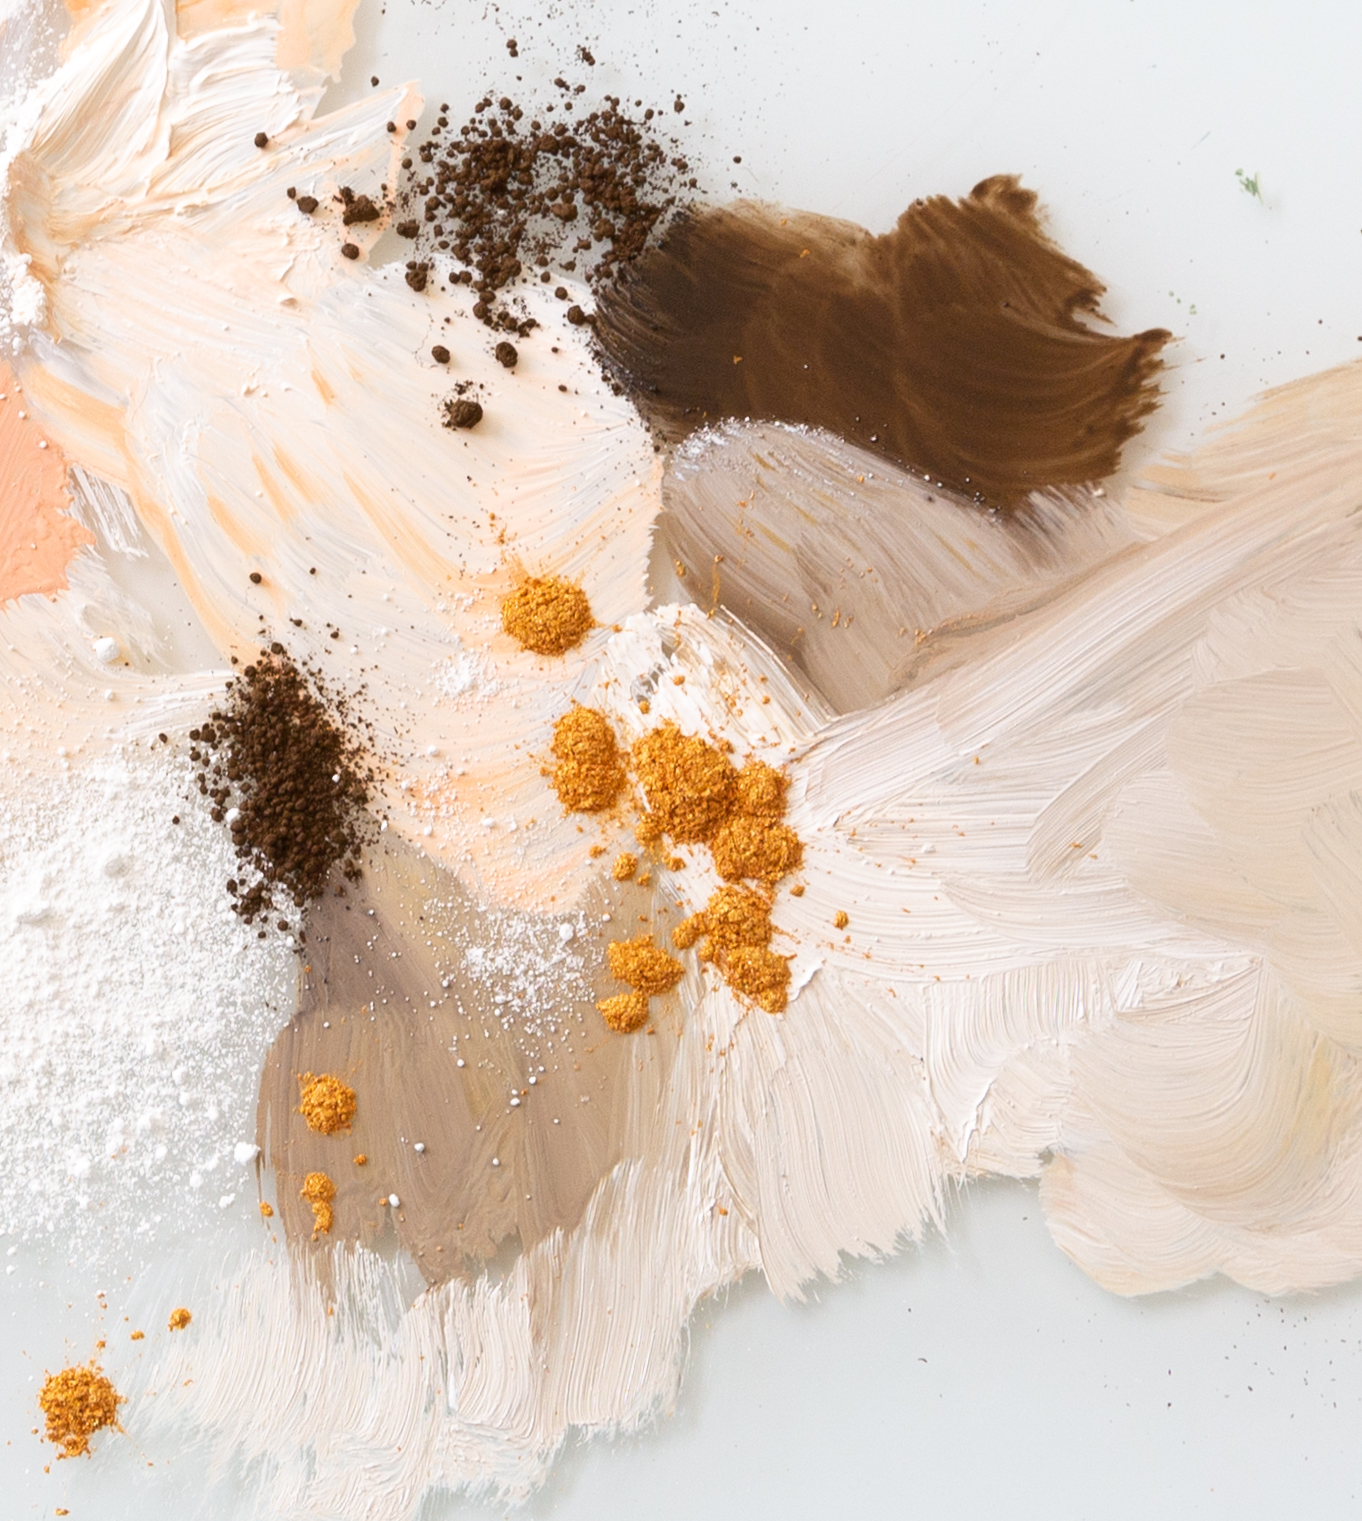 Painting | For the Love of Paint | Perfectly Imperfect